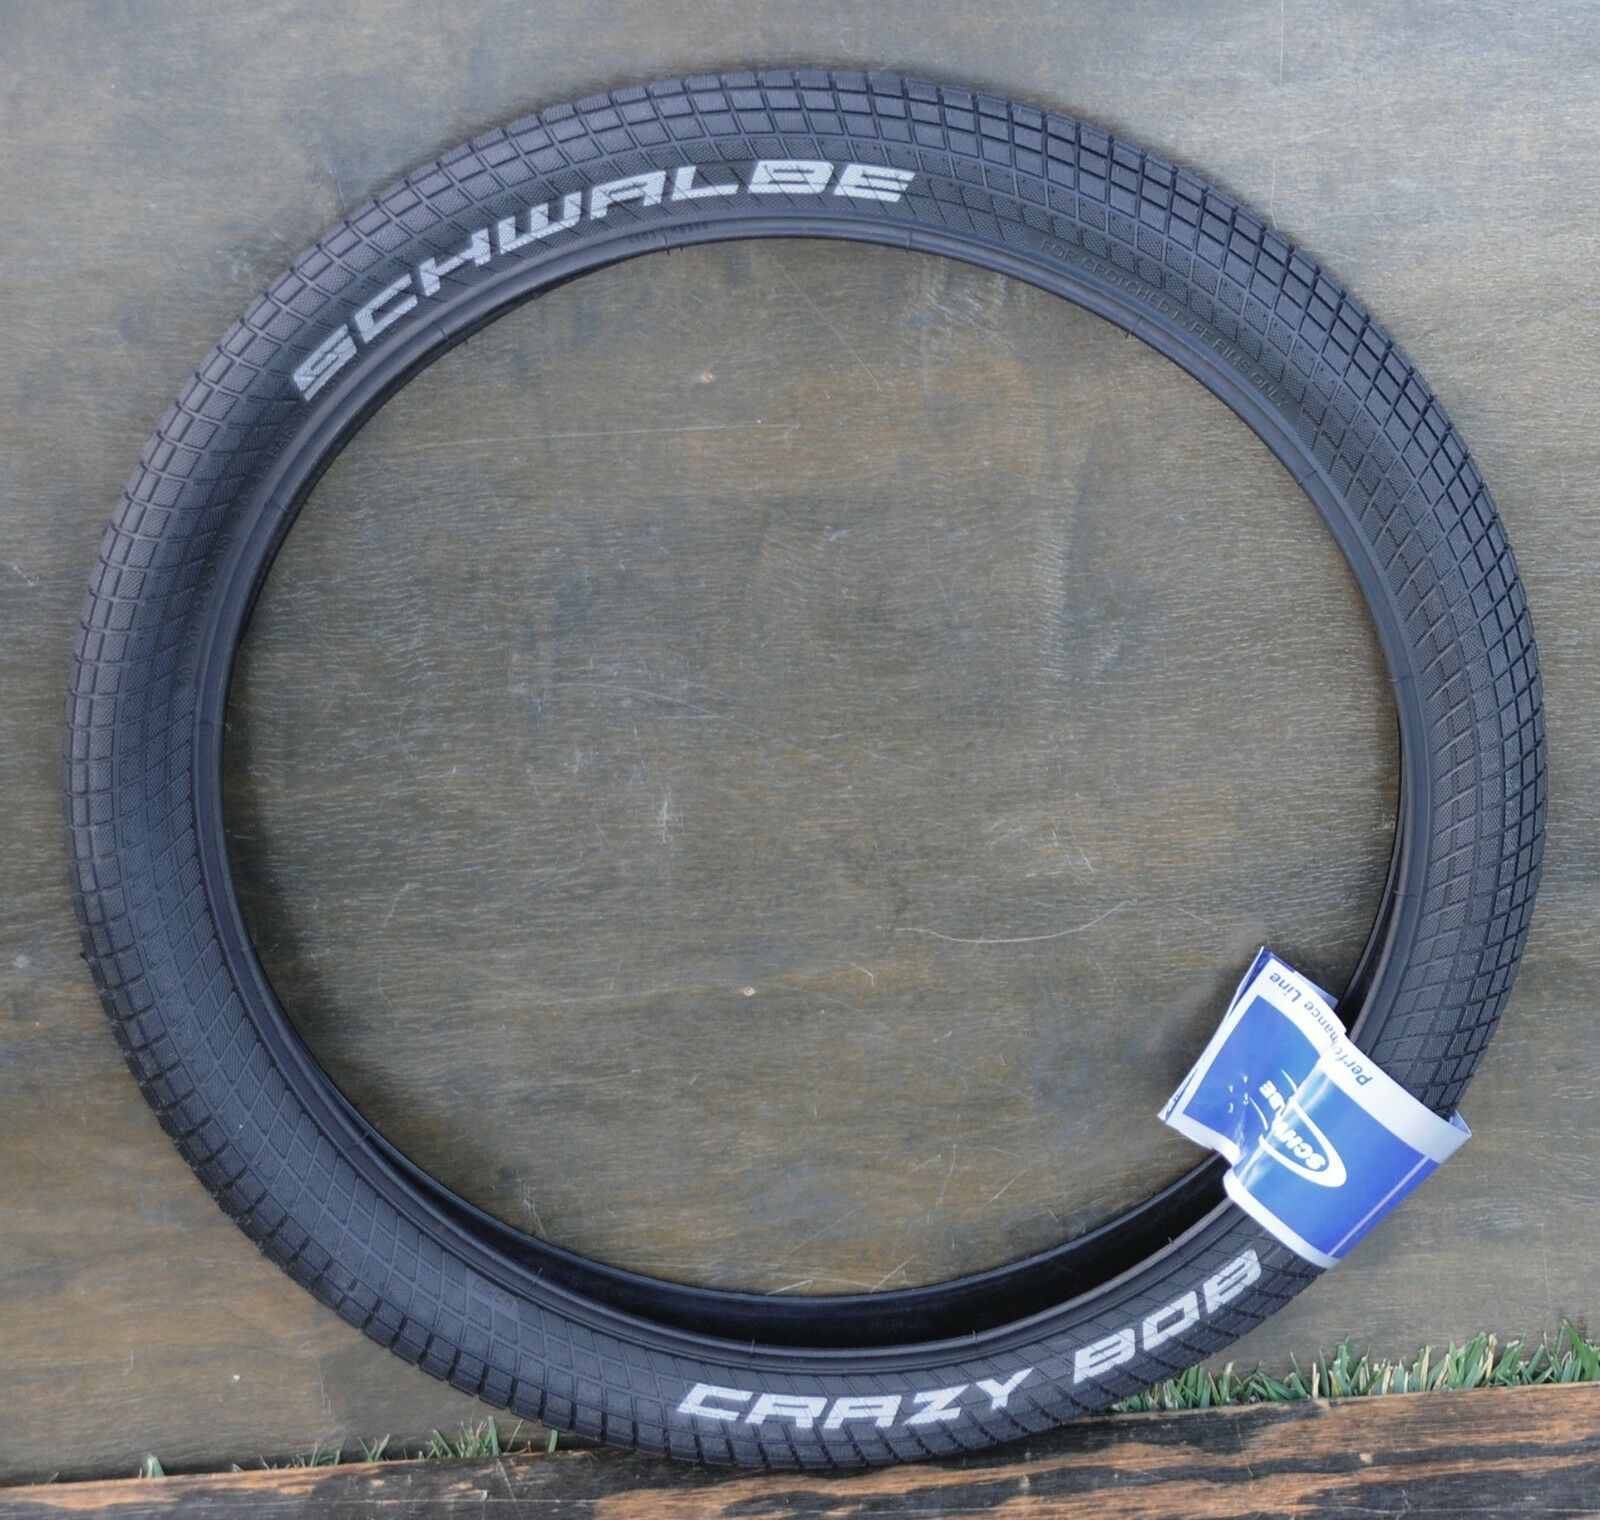 24 x2.35 Schwalbe CraZyBoB BMX Cruiser Bicycle Tire Vintage Schwinn Chopper Bike